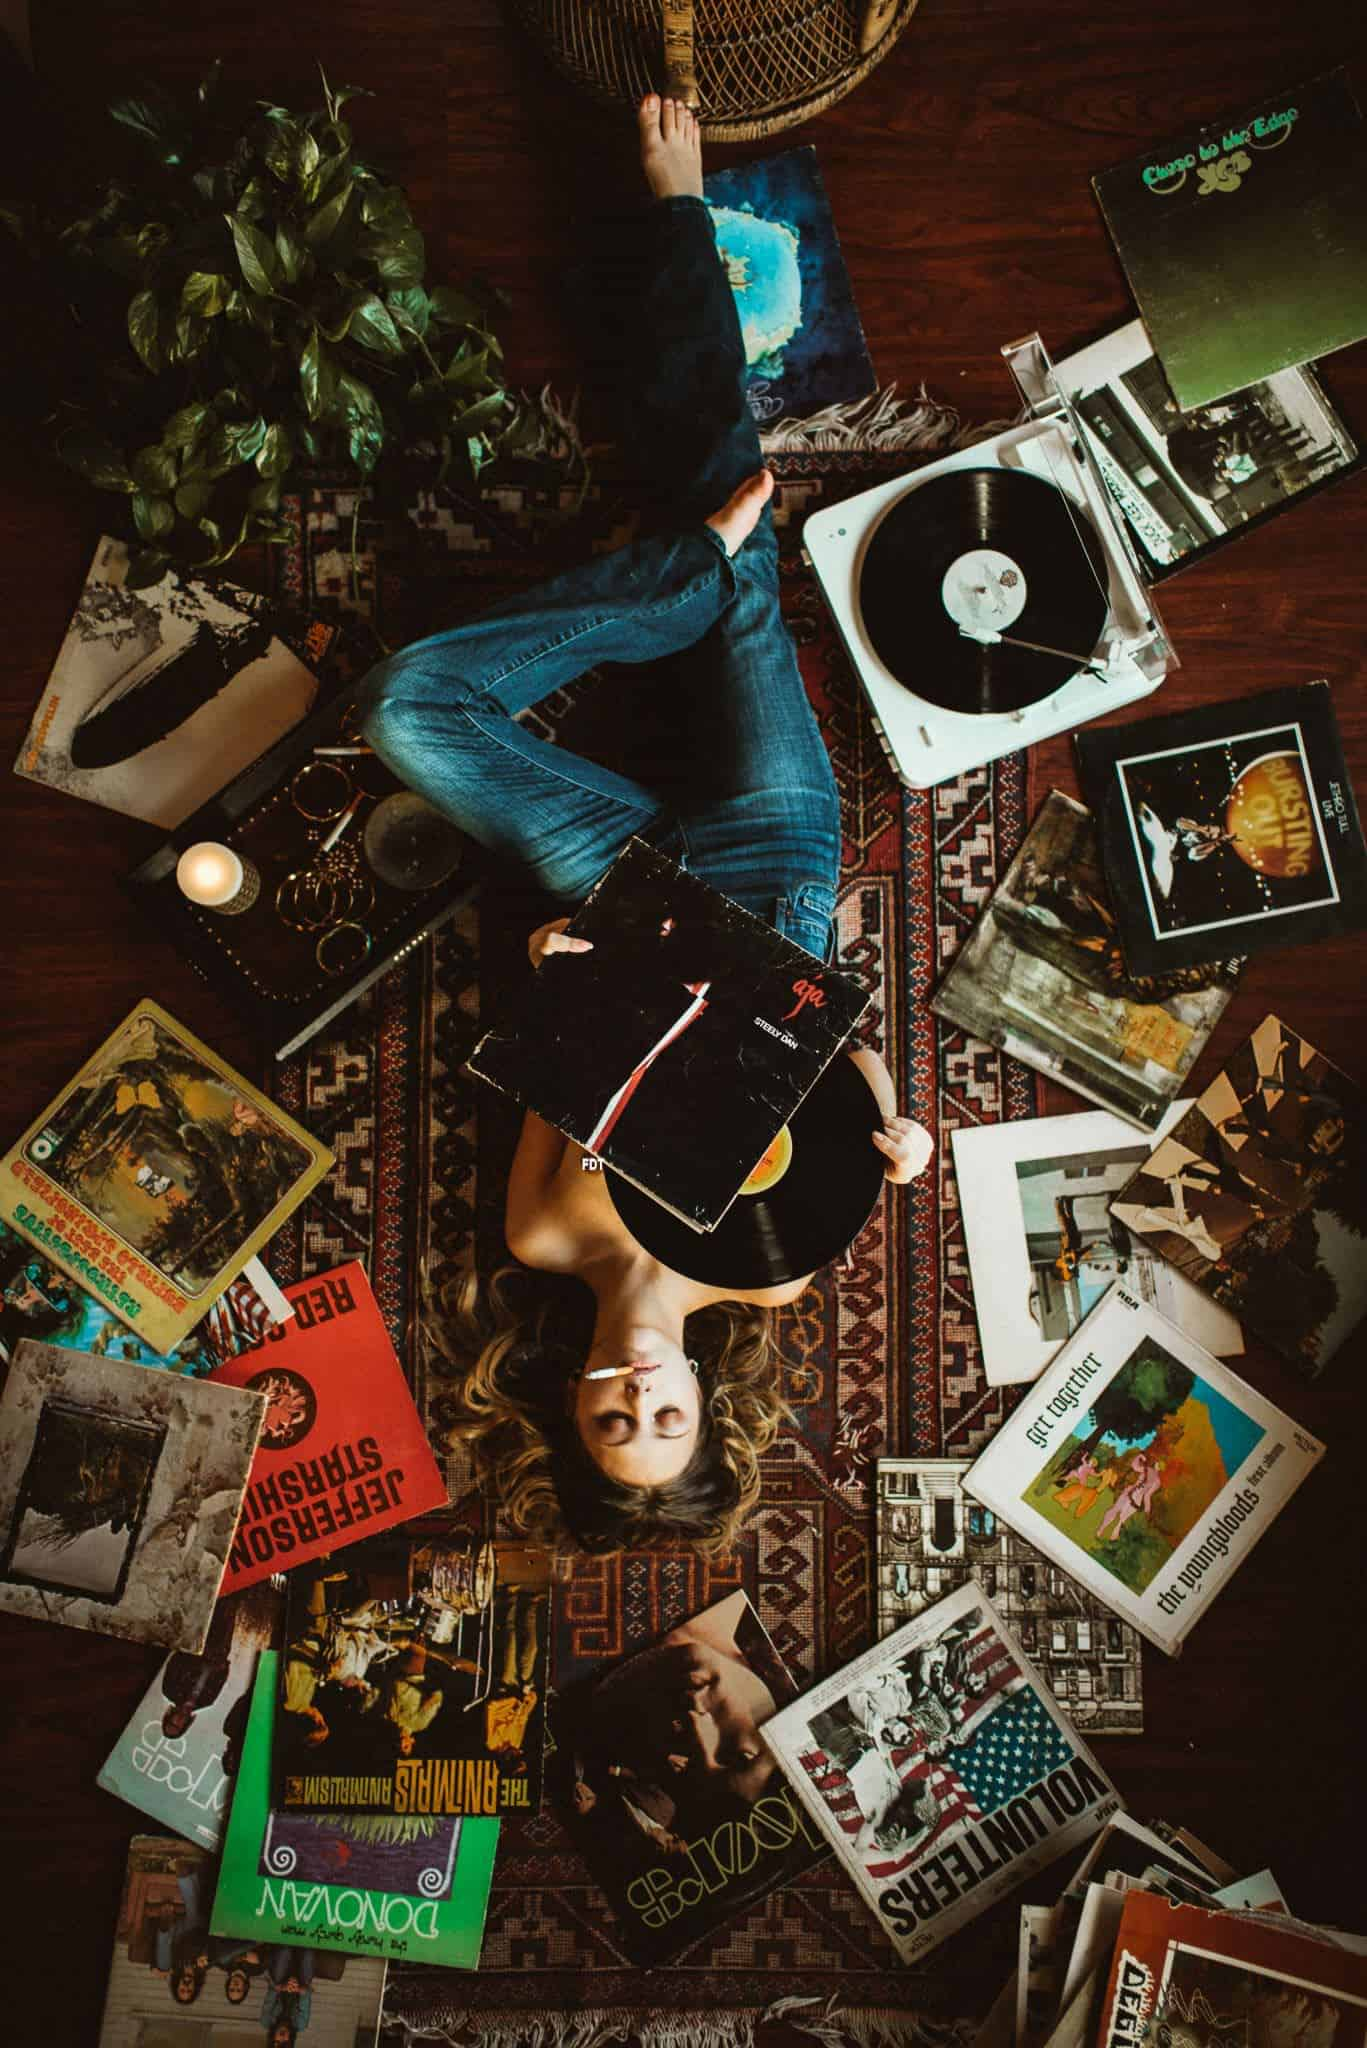 A young woman is lying on a carpet and looks through some pieces of vinyl while smoking.